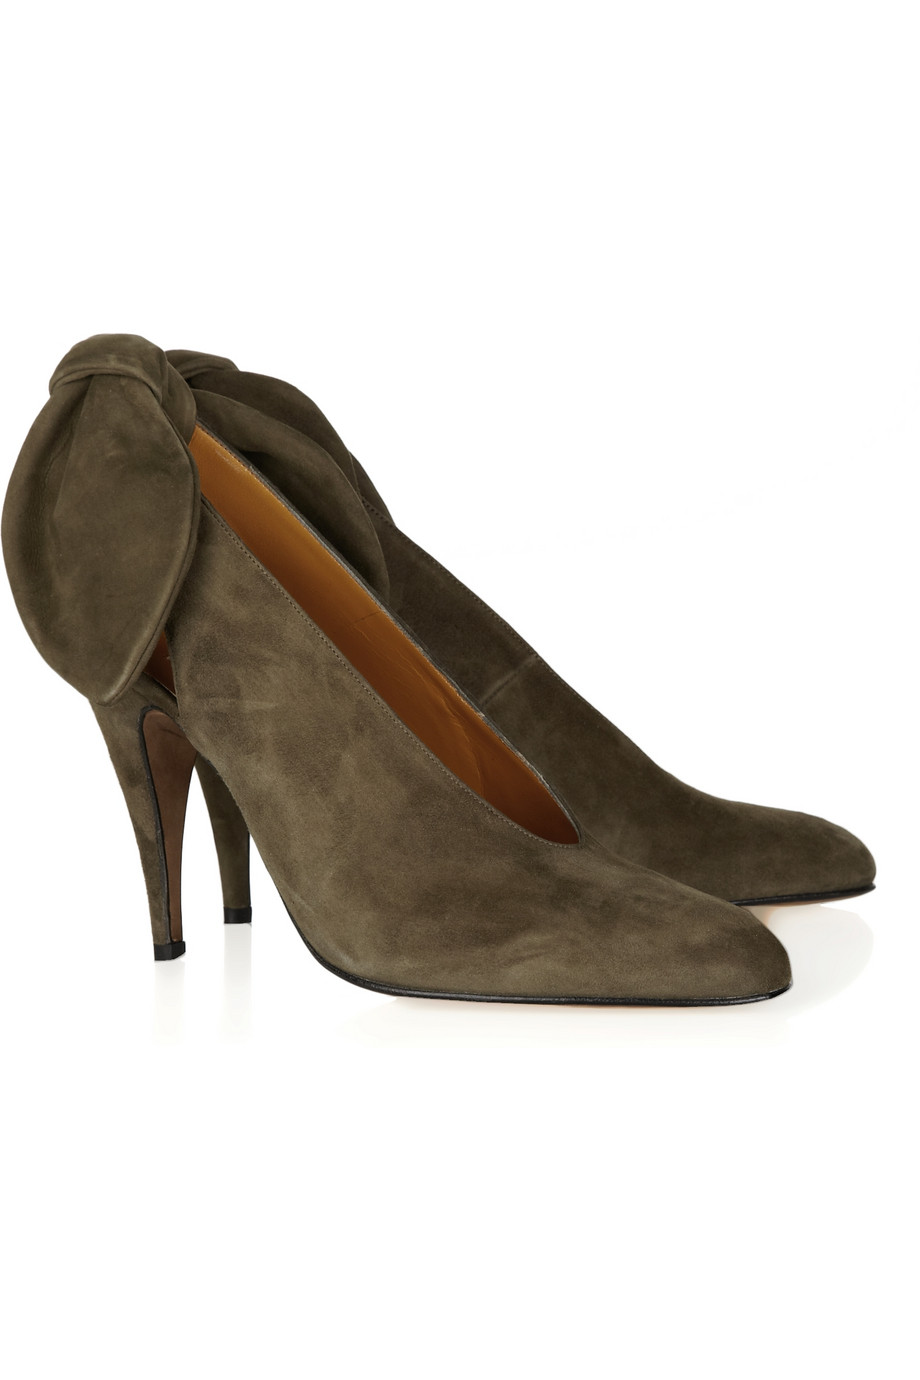 c2f7cbecbc2 Lyst - Carven Bow-back Suede Slingbacks in Brown